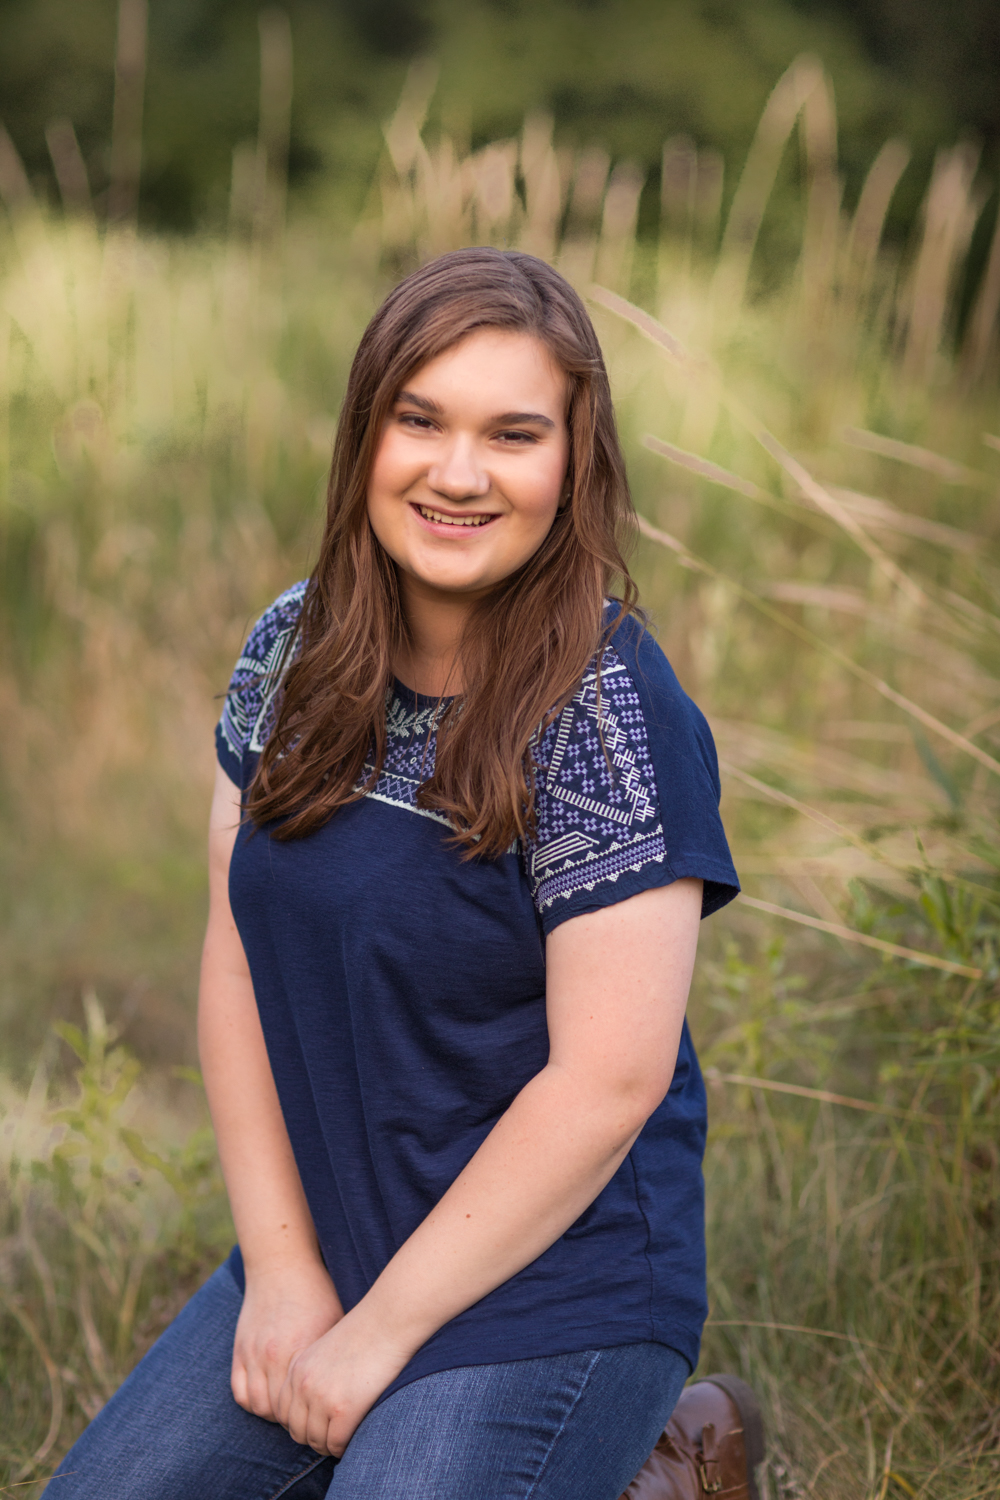 jill_hogan_senior_photography (16 of 17).jpg